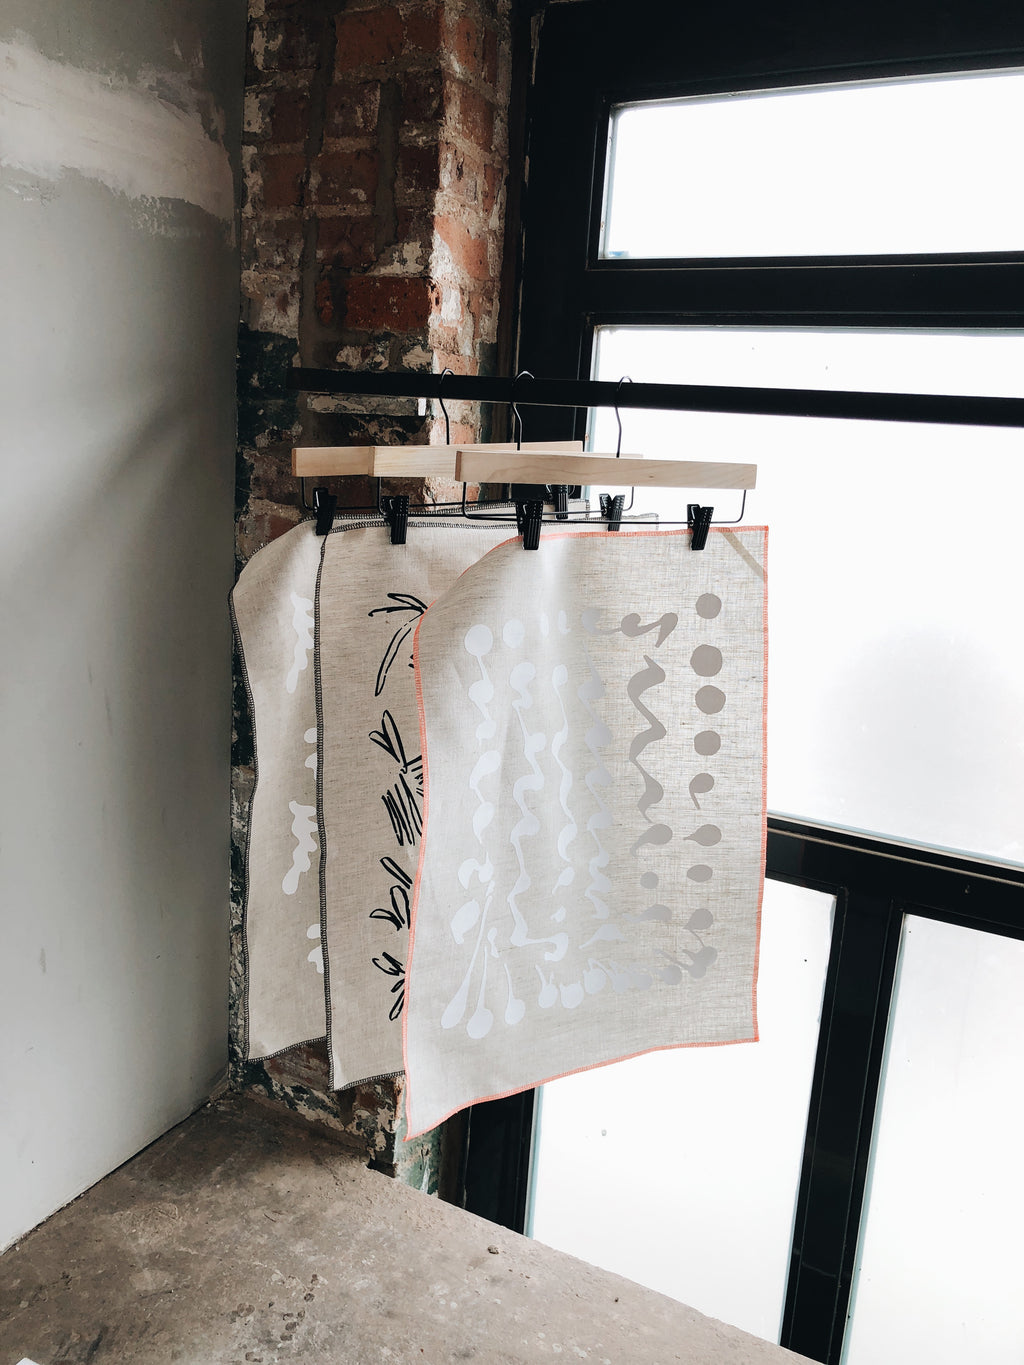 4: Three Patterned Tea Towels Hanging By A Window - LEIF